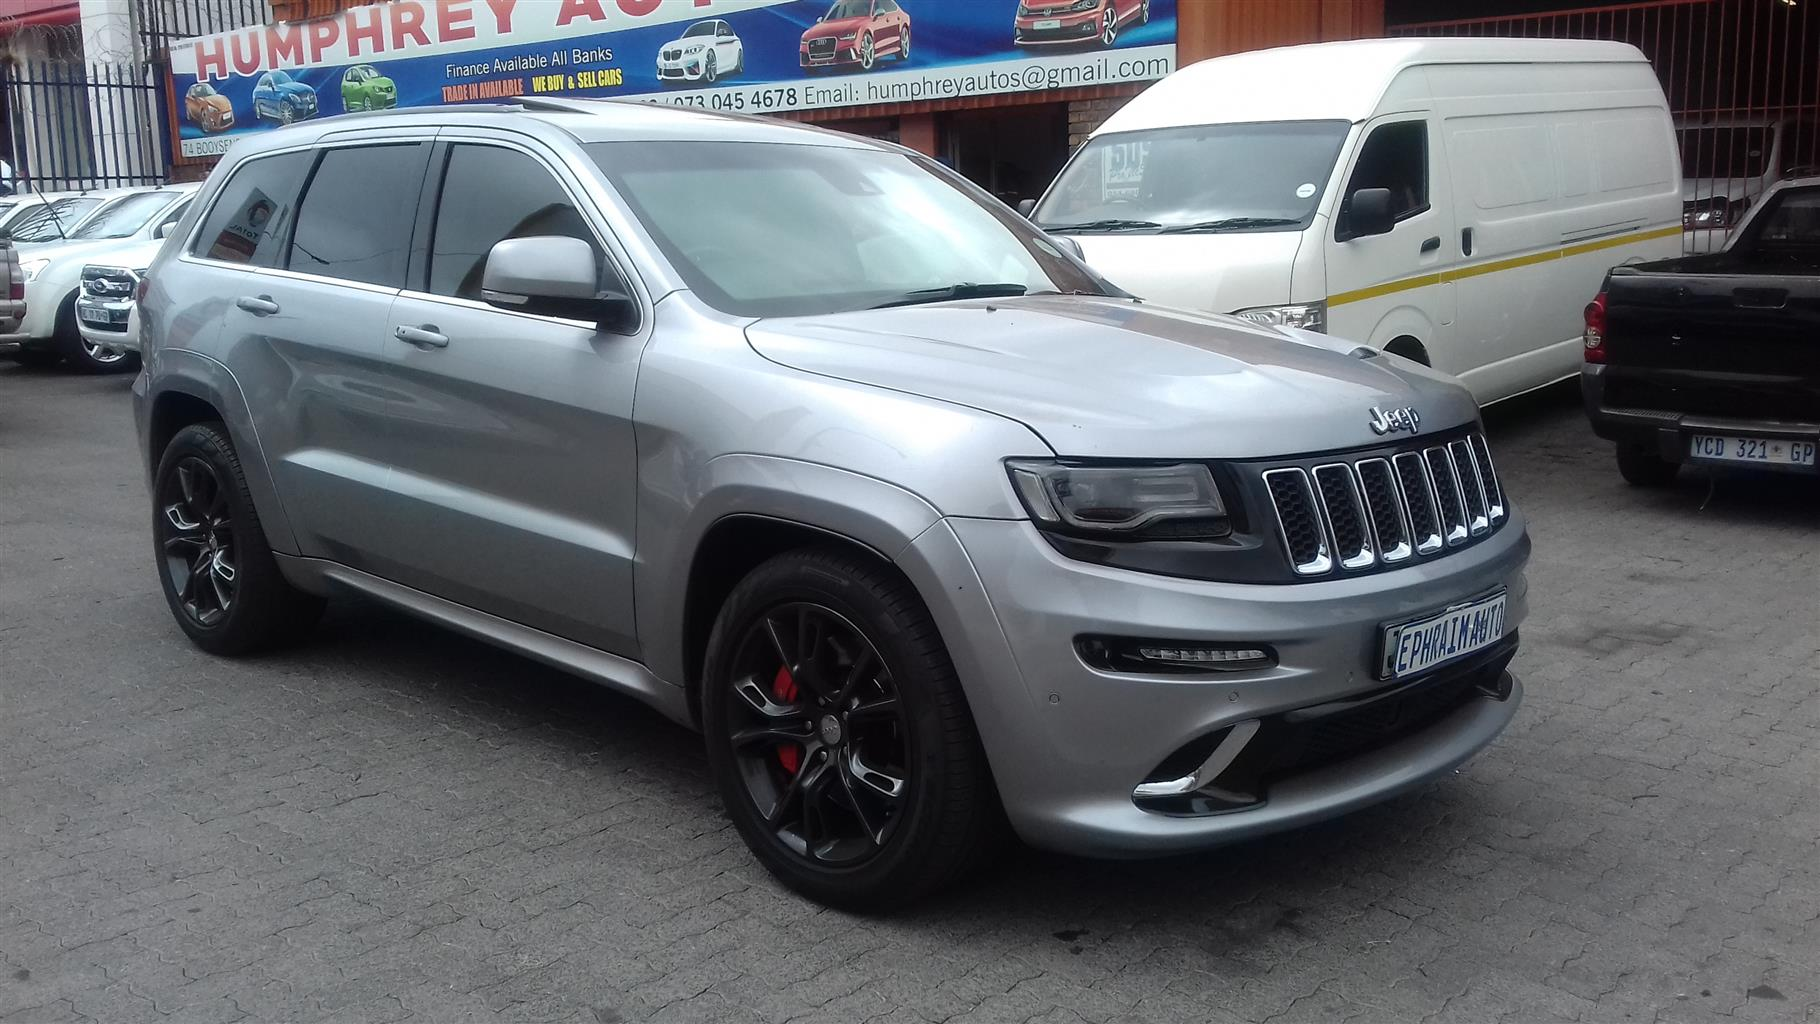 Jeep Cherokee Srt8 For Sale >> 2014 Jeep Grand Cherokee Srt8 Junk Mail